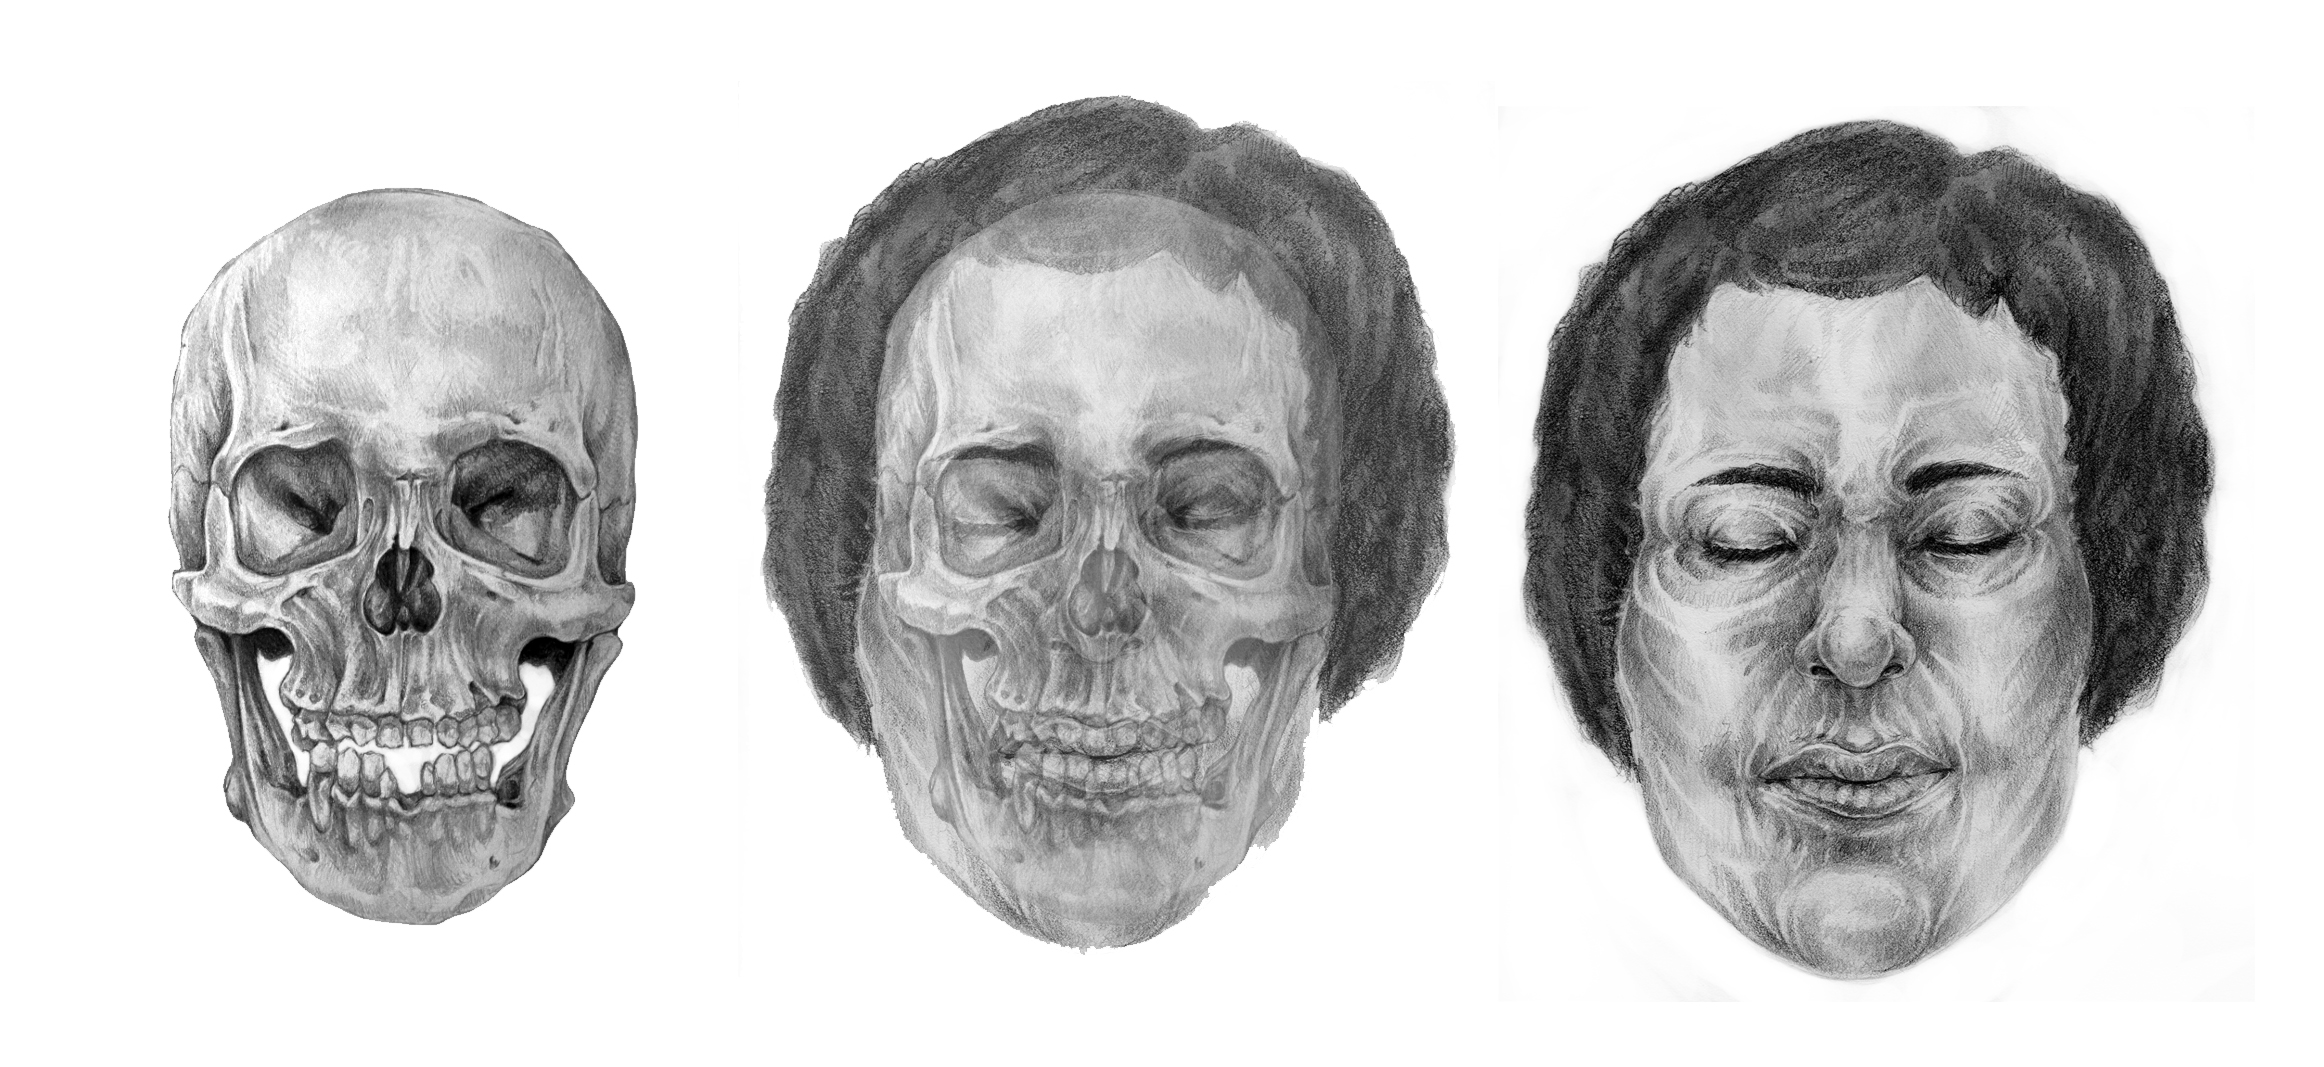 "Normal   0           false   false   false     EN-US   X-NONE   X-NONE                                                                              Forensic Facial Reconstruction  Reconstructive illustration based on research of a specimen from the anthropology department's collections.  In   collaboration with the Cleveland Museum of Natural History.    Exhibited:   •   2016 Ohio State Fair Fine Arts Exhibition in Columbus, OH   •   2015 AICUO EVA's Finalist Exhibition at Roy G Biv Gallery in Columbus, OH                                                                                                                                                                                                                                                                                                                                                                                                                                                                                                                                                                                                                                                                                                                                                                                   /* Style Definitions */  table.MsoNormalTable 	{mso-style-name:""Table Normal""; 	mso-tstyle-rowband-size:0; 	mso-tstyle-colband-size:0; 	mso-style-noshow:yes; 	mso-style-priority:99; 	mso-style-parent:""""; 	mso-padding-alt:0in 5.4pt 0in 5.4pt; 	mso-para-margin:0in; 	mso-para-margin-bottom:.0001pt; 	mso-pagination:none; 	mso-hyphenate:none; 	text-autospace:ideograph-other; 	font-size:12.0pt; 	font-family:""Times New Roman"",serif; 	mso-bidi-font-family:Mangal; 	mso-font-kerning:1.5pt; 	mso-fareast-language:ZH-CN; 	mso-bidi-language:HI;}"